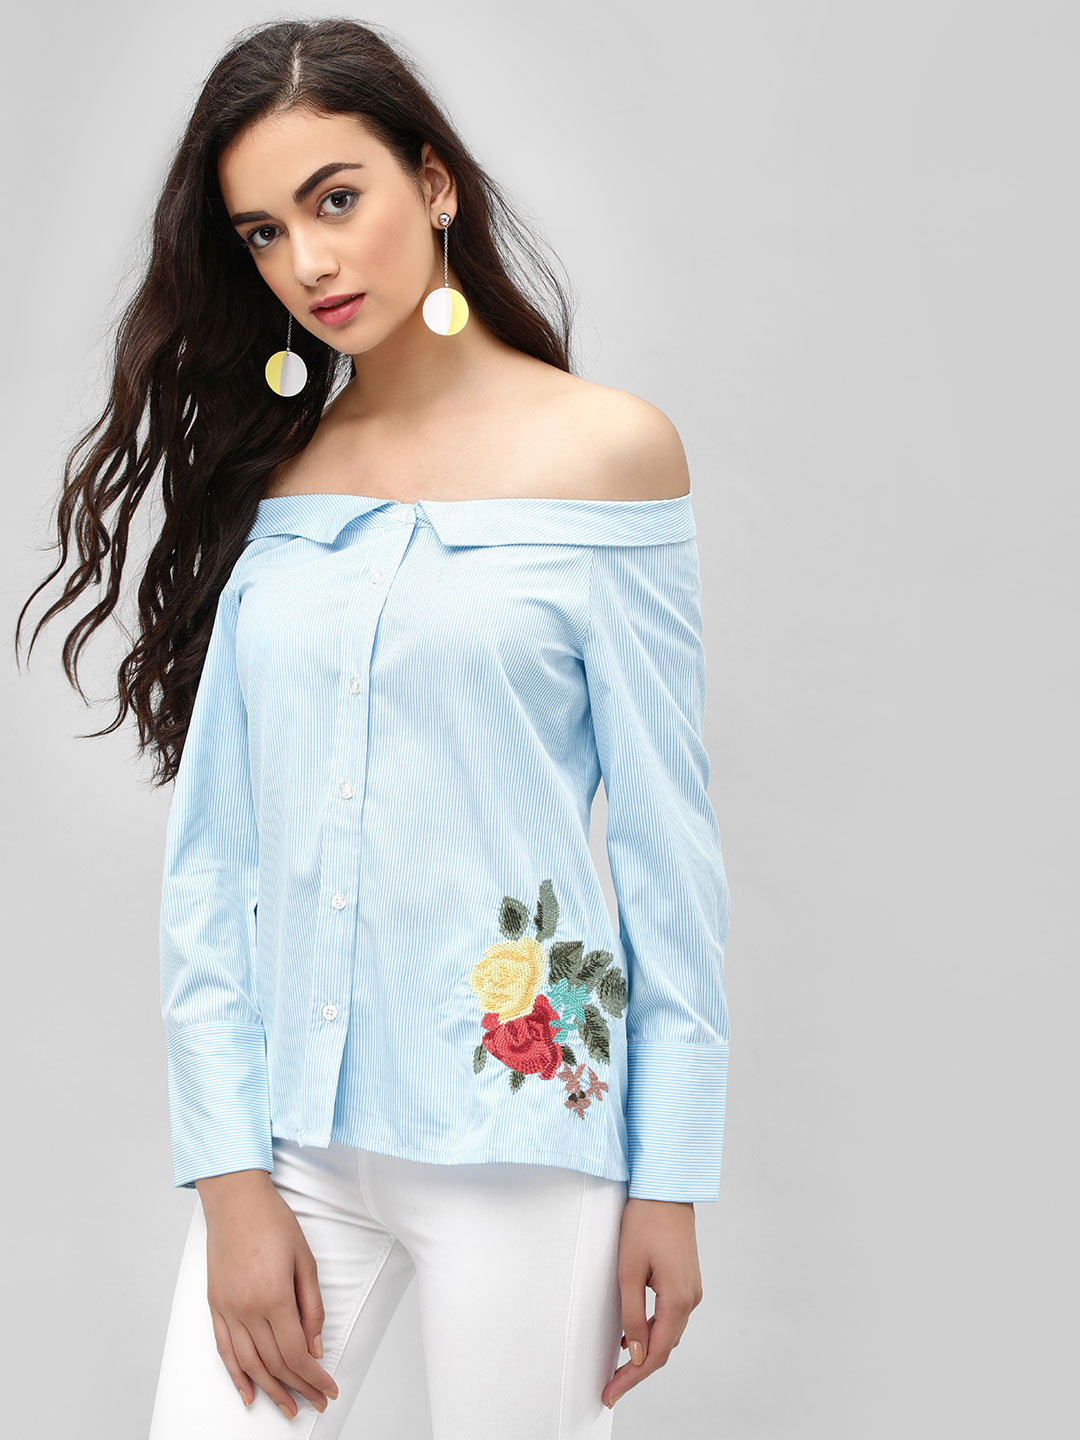 PostFold Blue Floral Embroidery Off-Shoulder Collared Shirt 1